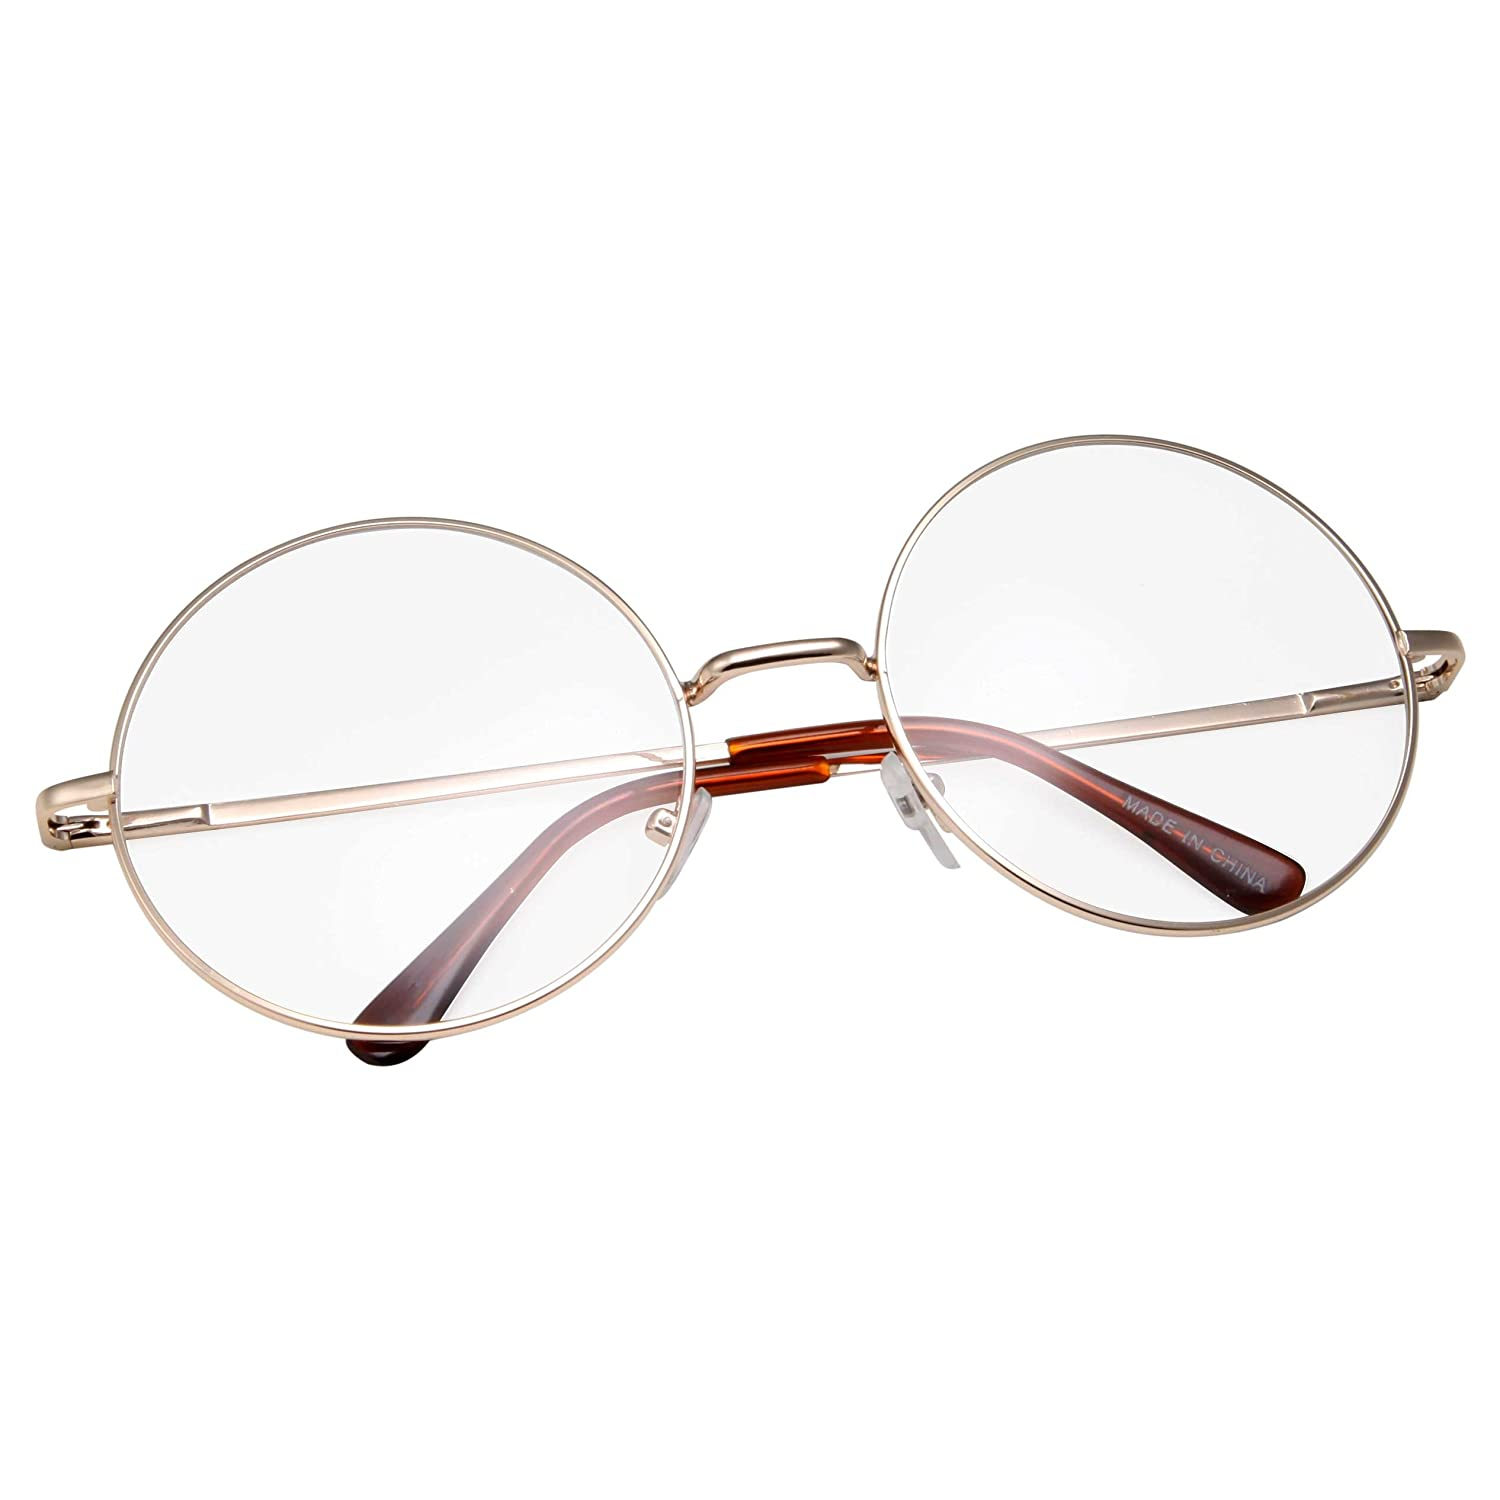 Santa Claus Round Frame Clear Lens Glasses